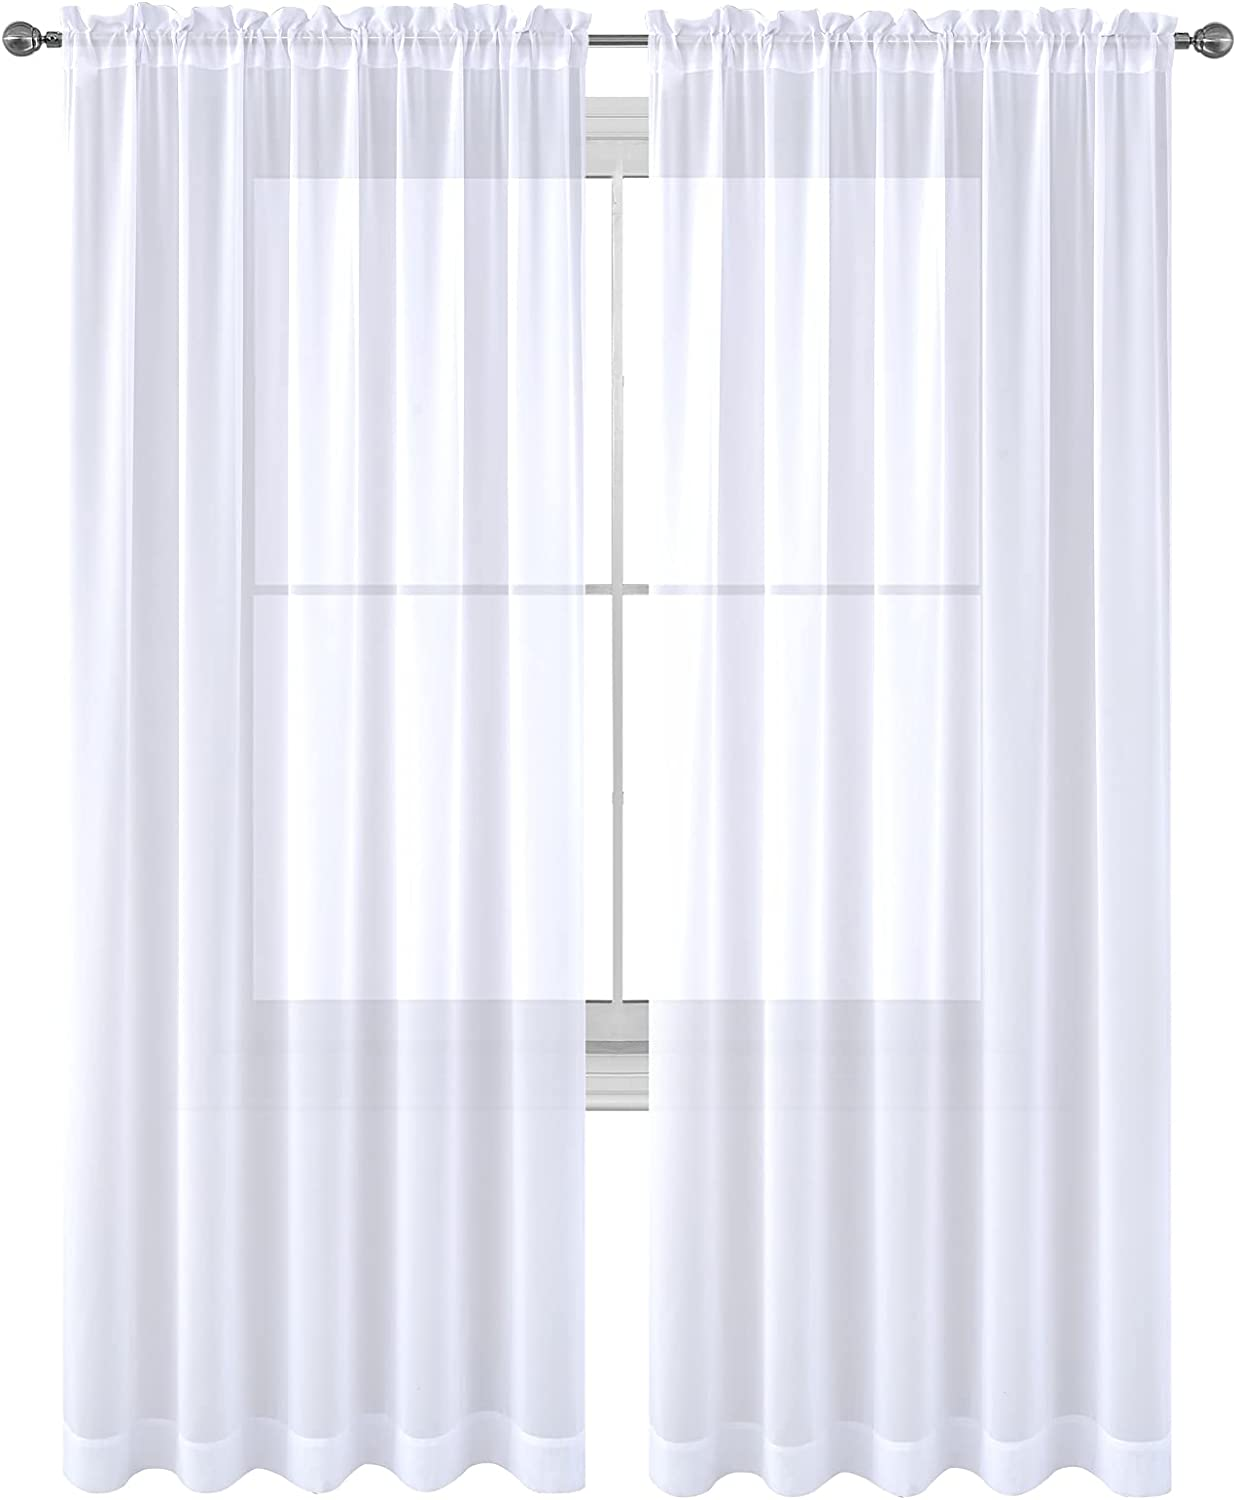 White sheer curtains 84 inch length 2 panels set Window Treatment Panels Beautiful Rod Pocket Voile Elegance Curtains Drapes for Living Room, Bedroom, Kitchen Fully Stitched (White, 84